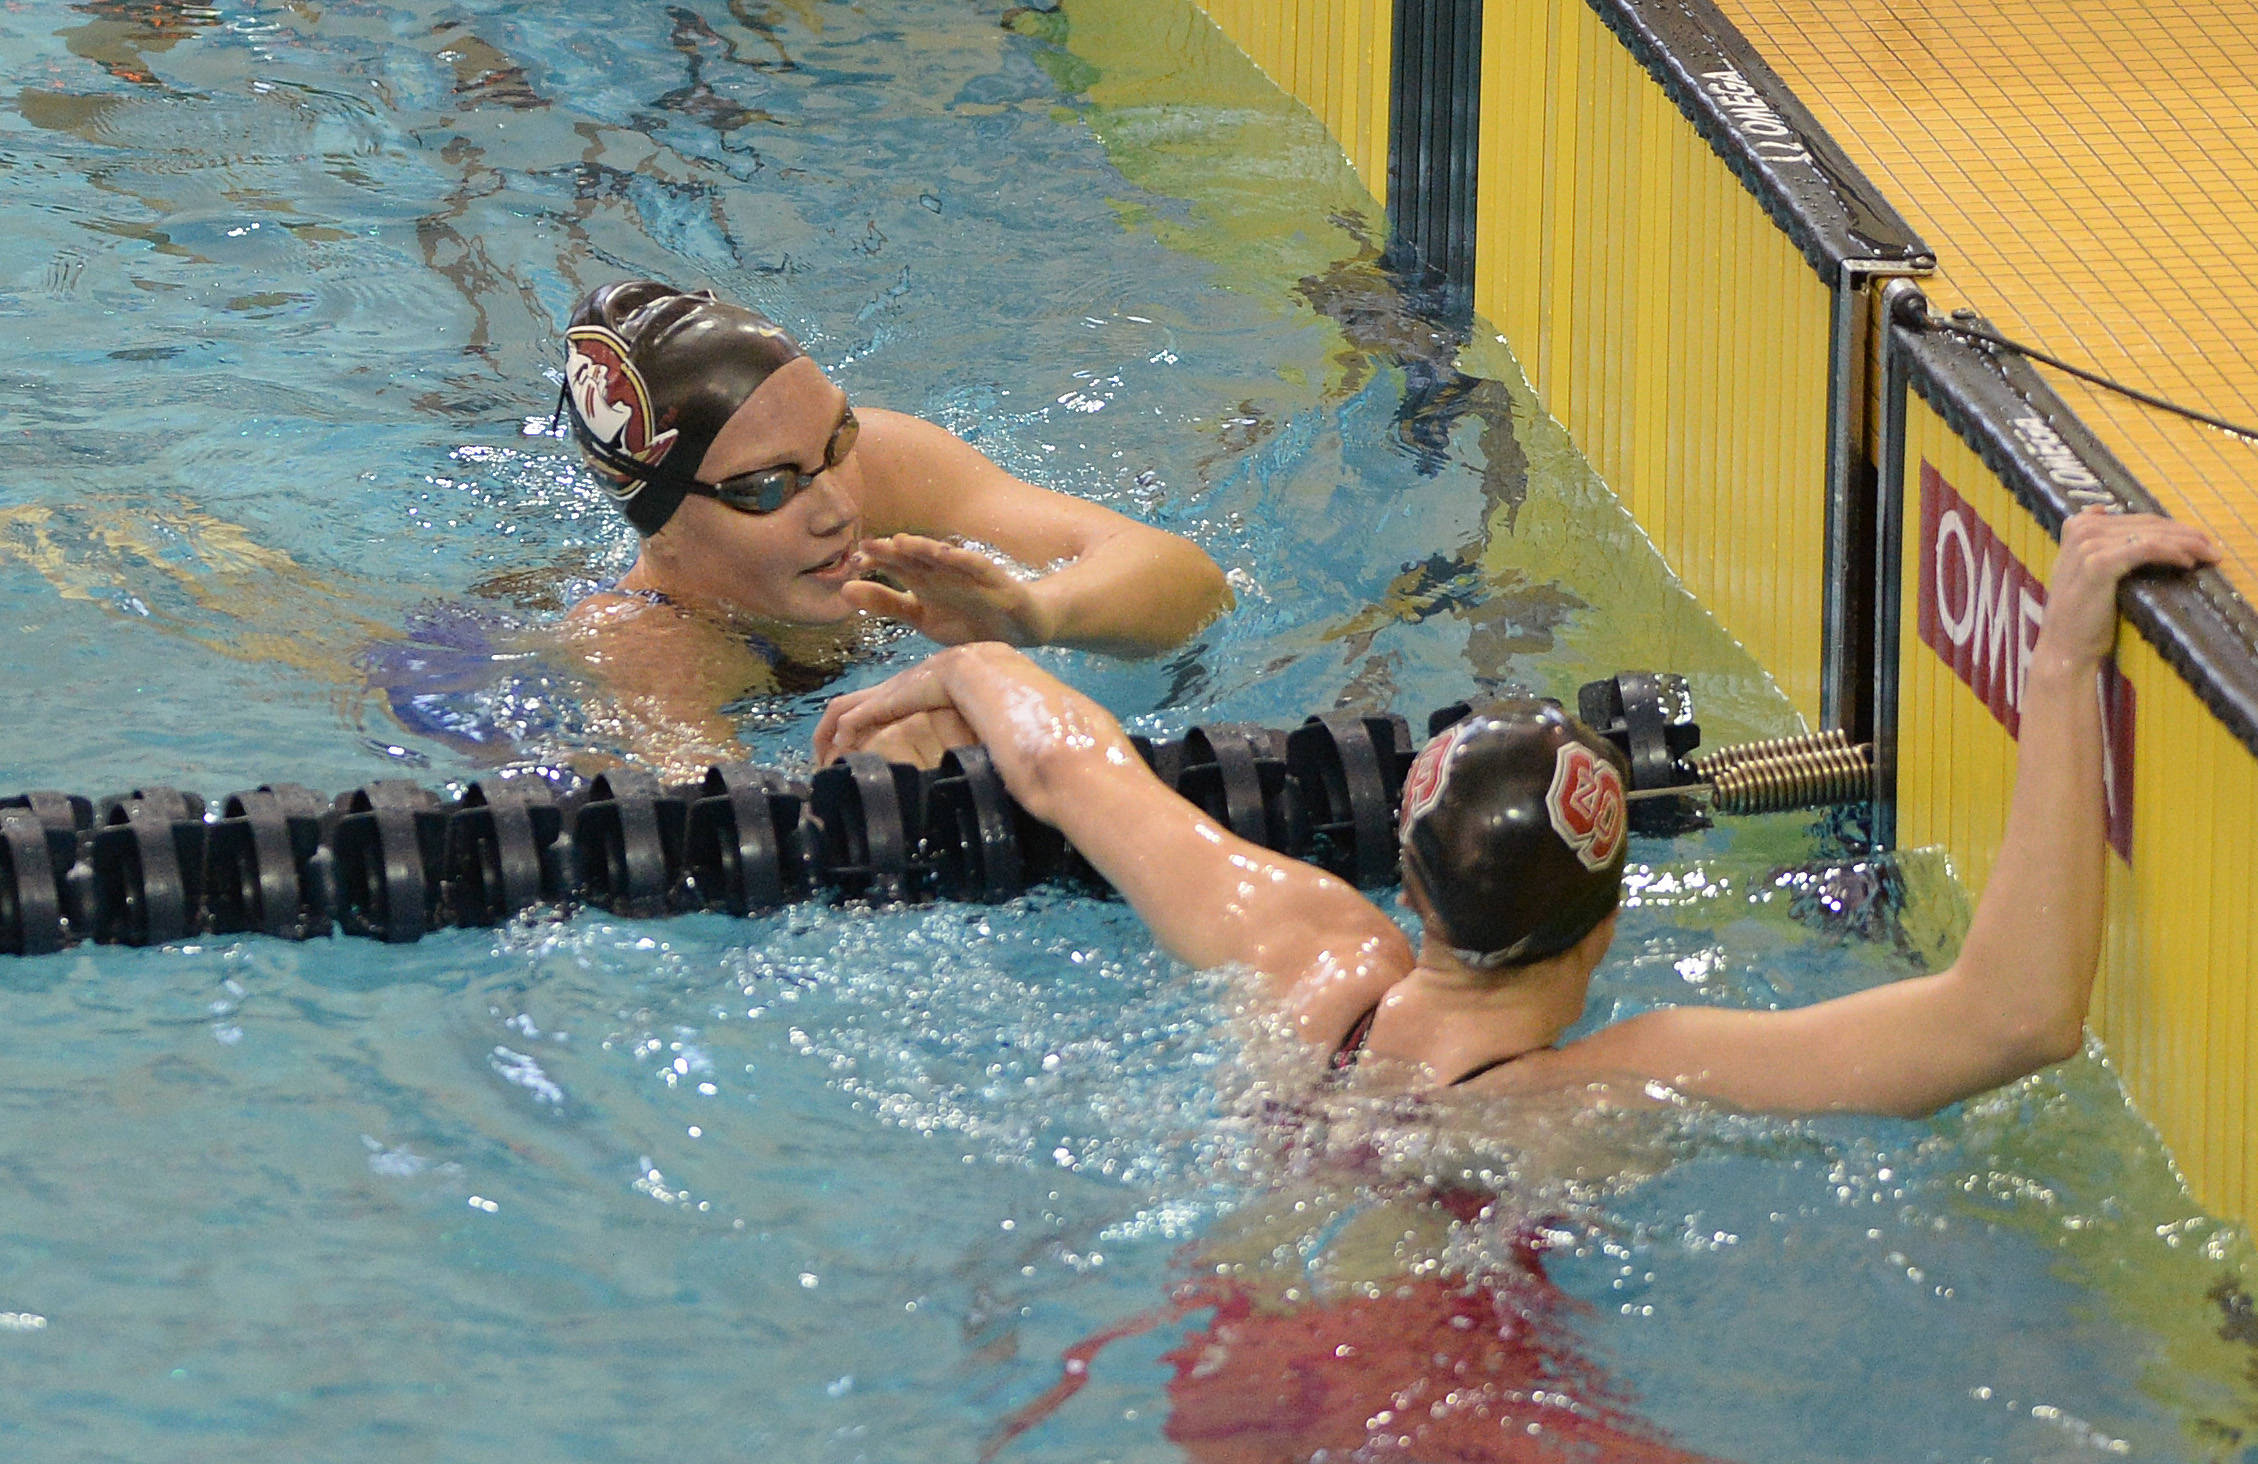 Kaitlyn Dressel shakes hands after the 200 free - Mitch White